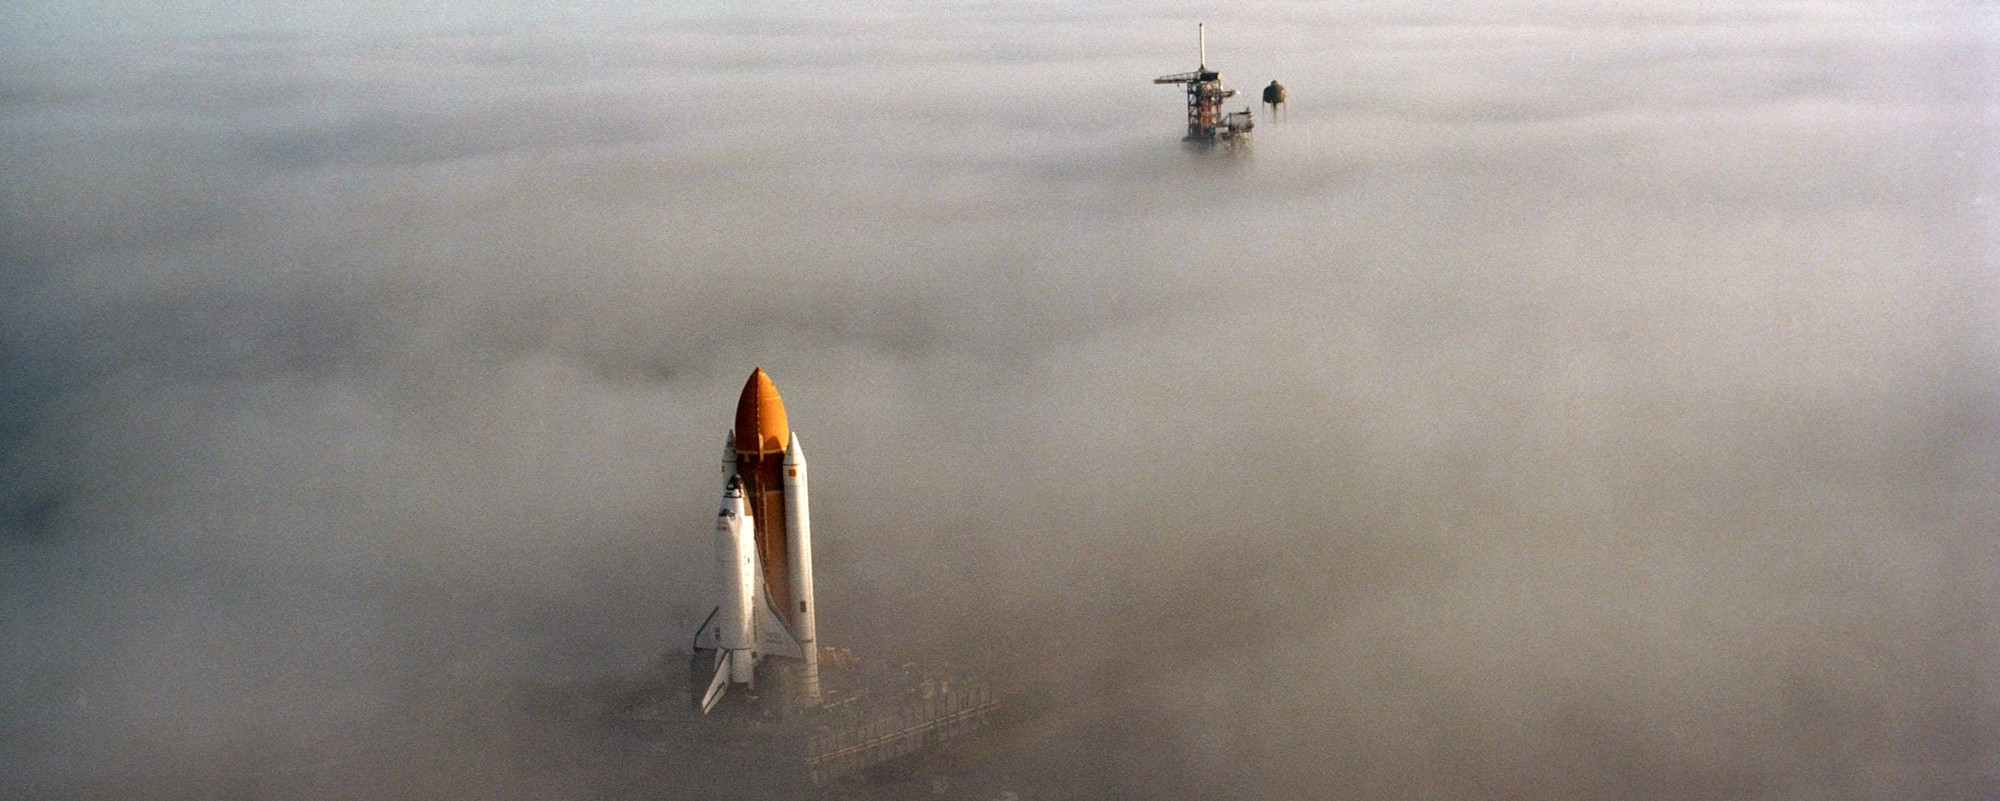 How The Space Shuttle Challenger Disaster Changed America